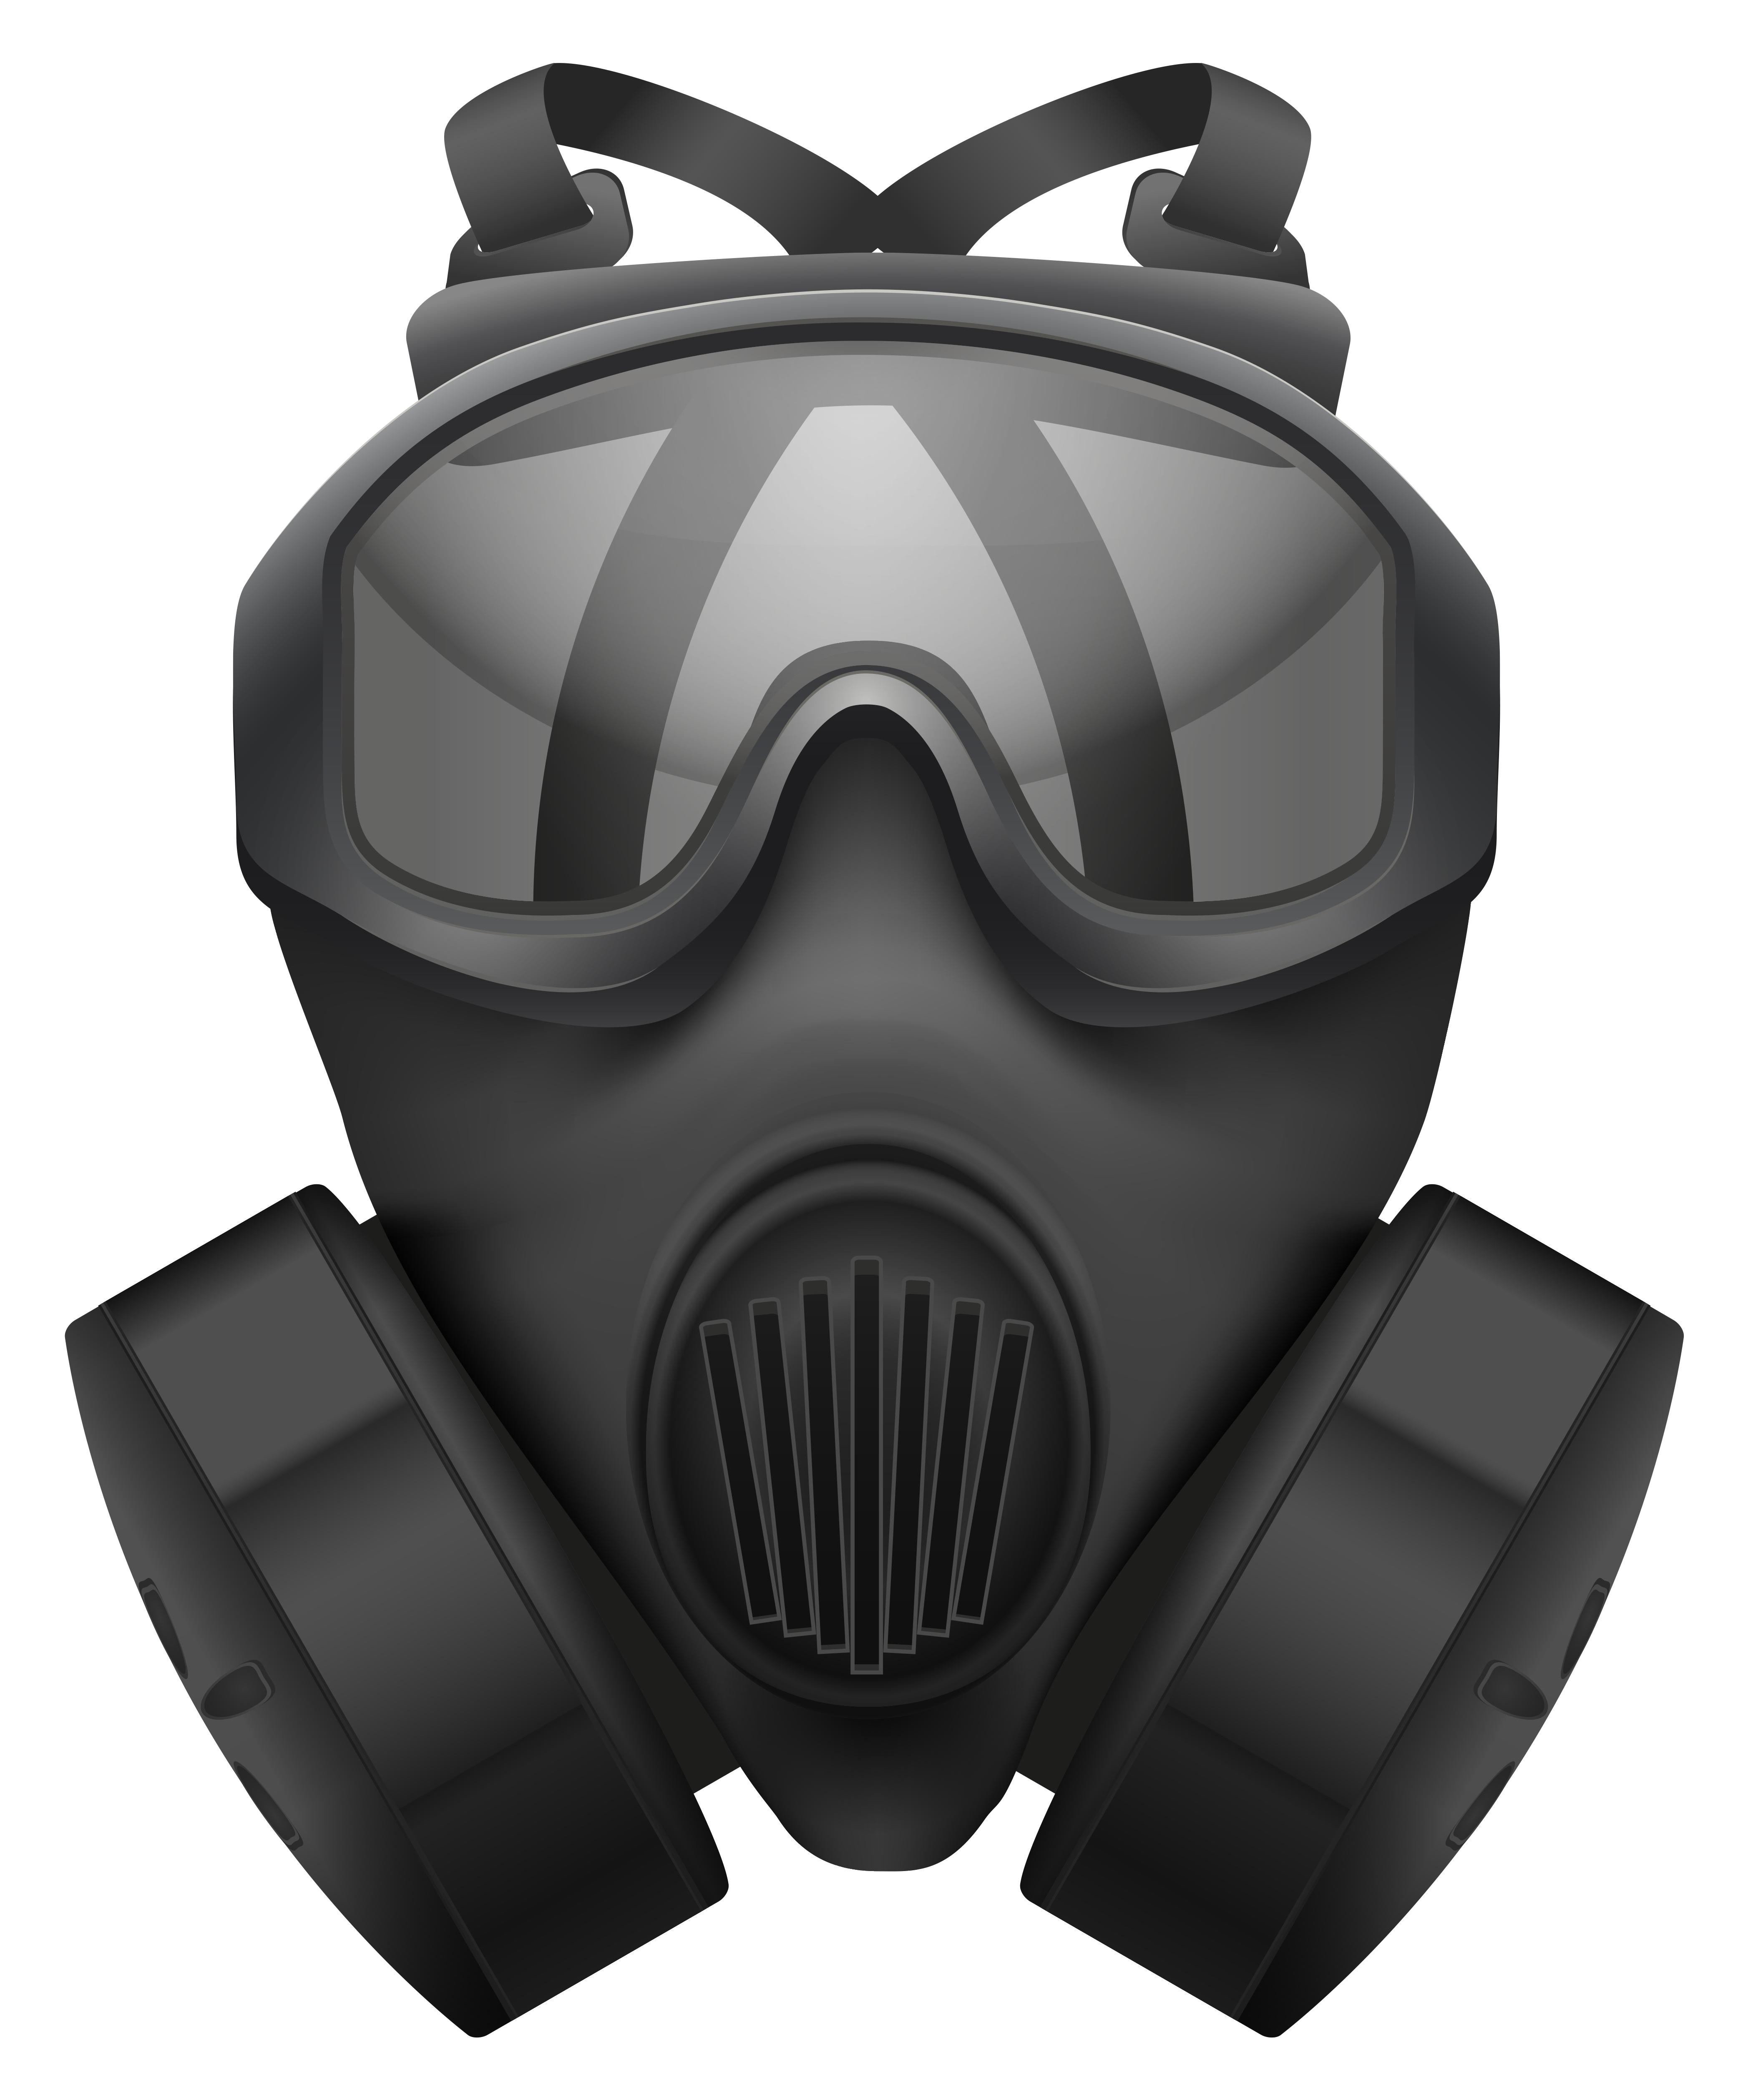 Gas Mask Png PNG Image